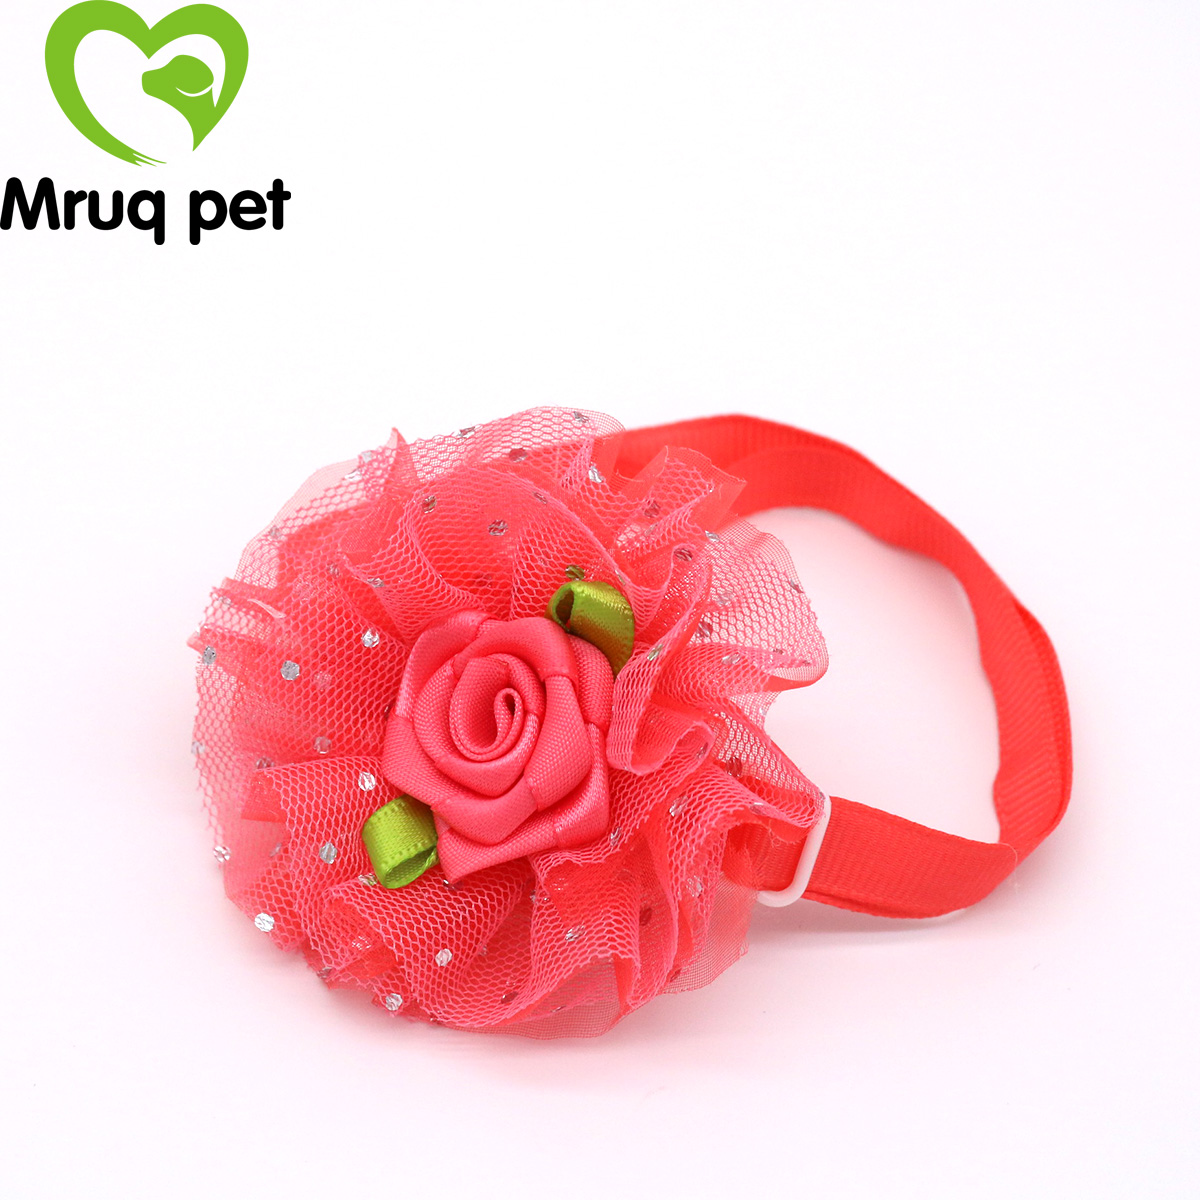 New 60pcs Pet Puppy Dog Cat Bow Ties Adjustable Bright Color Flower Dog Bowties Dog Accessories Pet Supplies